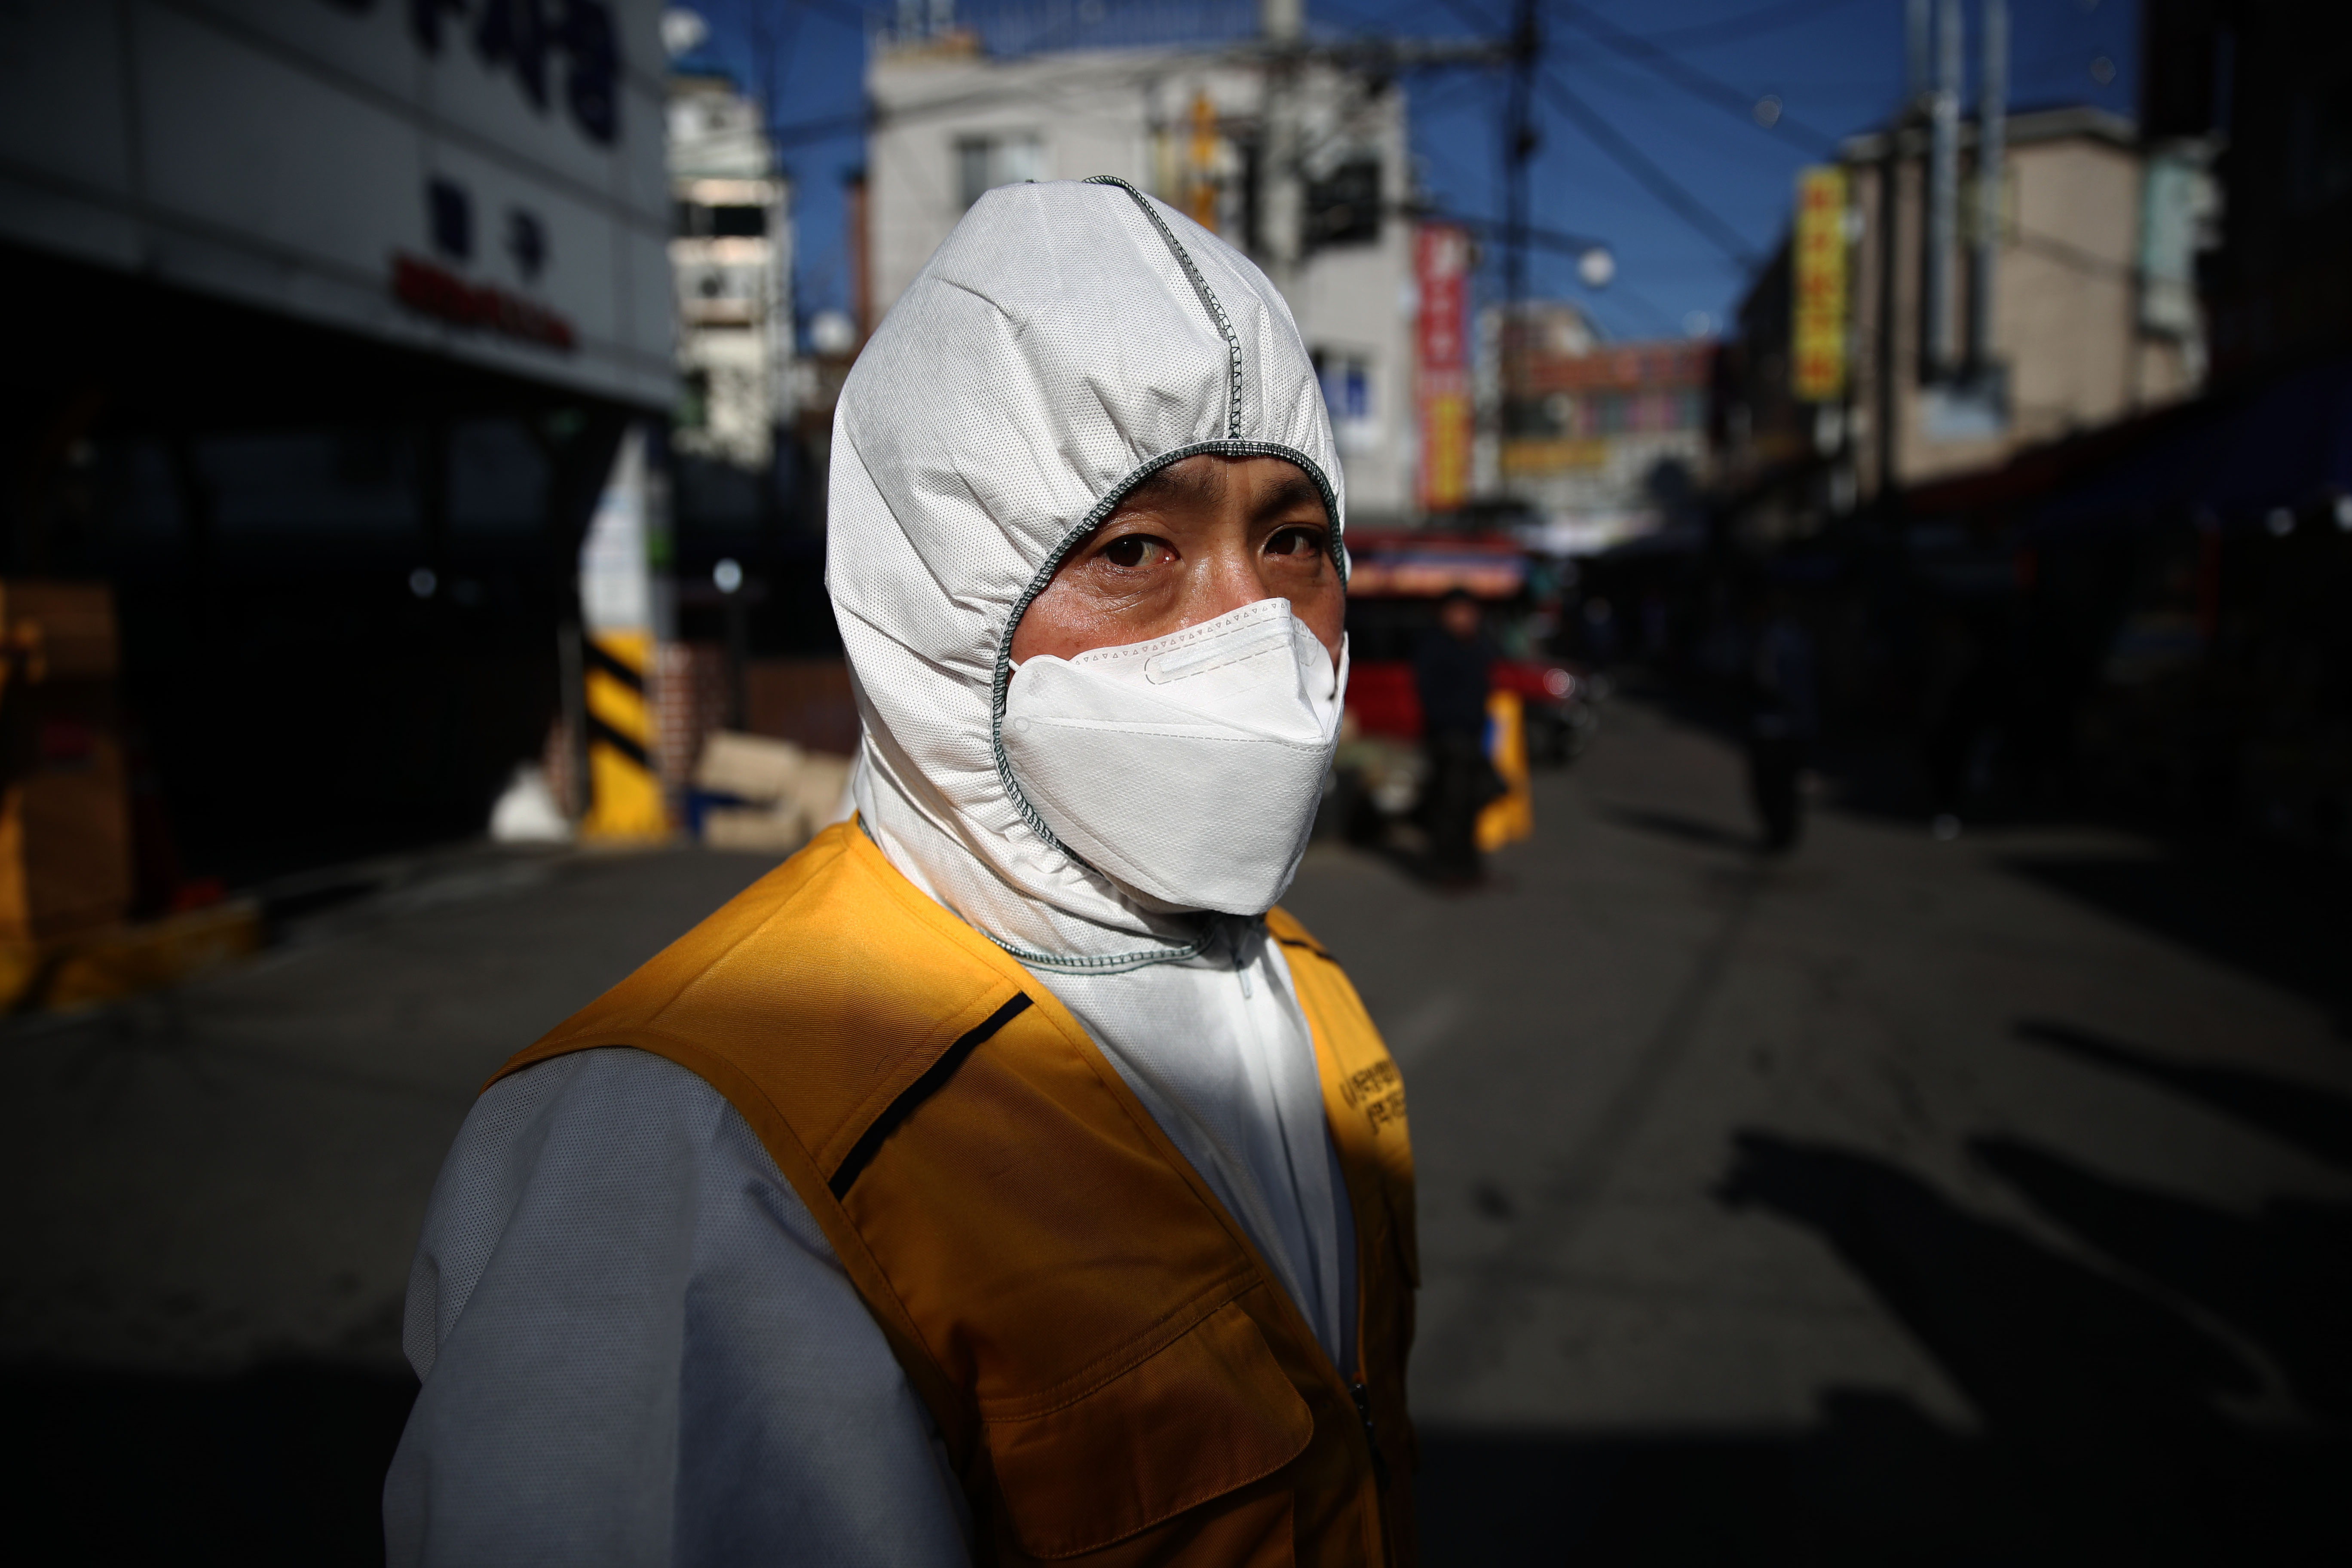 A man wearing a medical mask stands in a street.